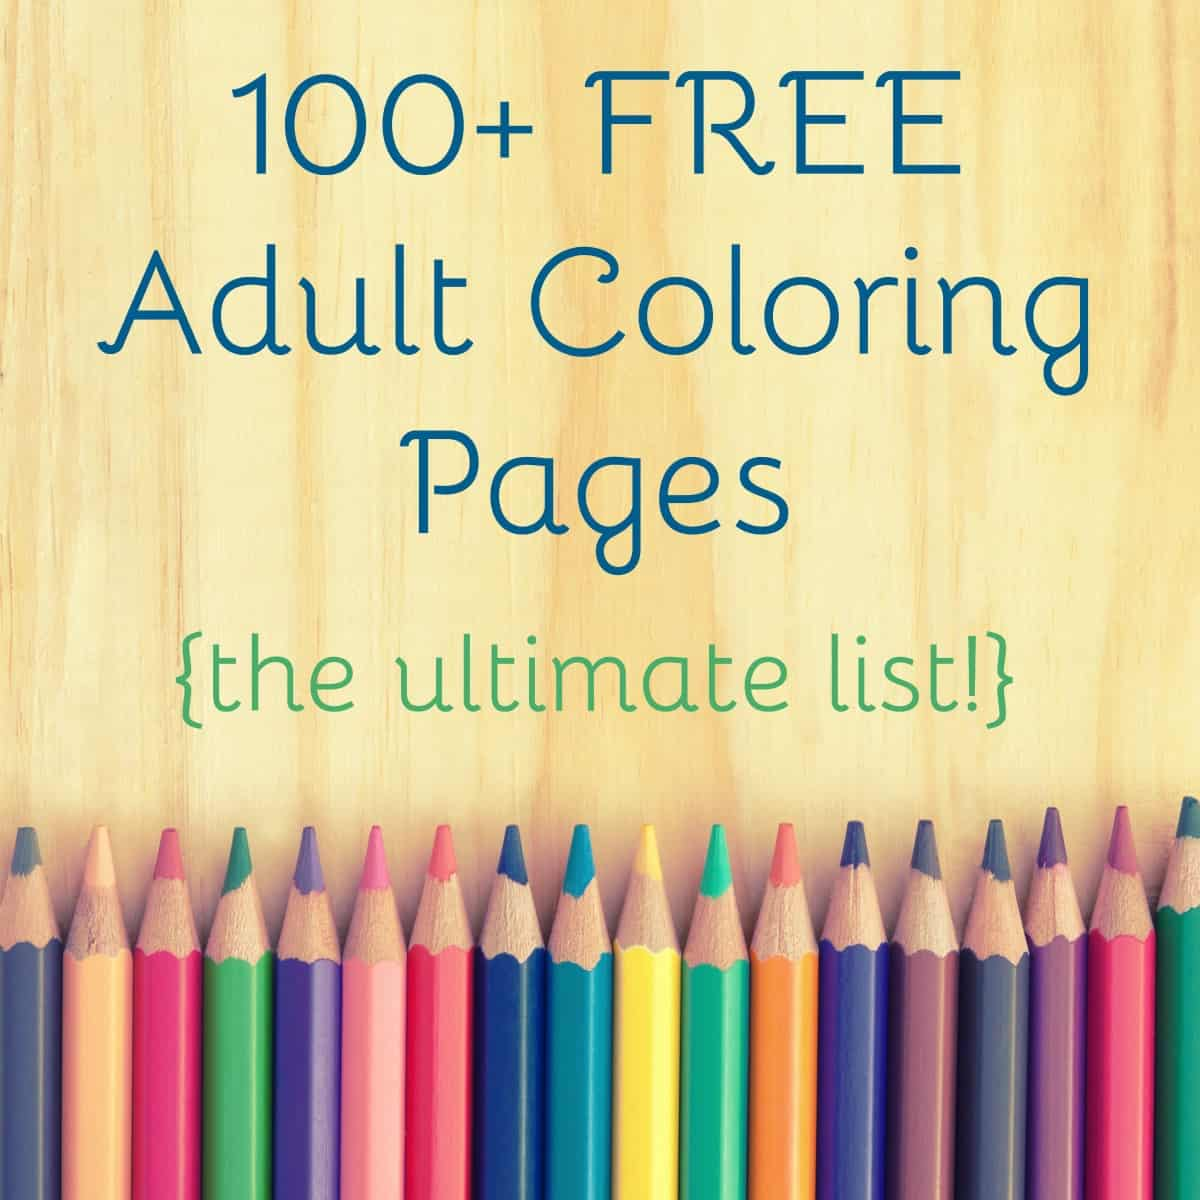 get links to over 100 free coloring pages youll love these favorites including - Free Colouring Pages To Print